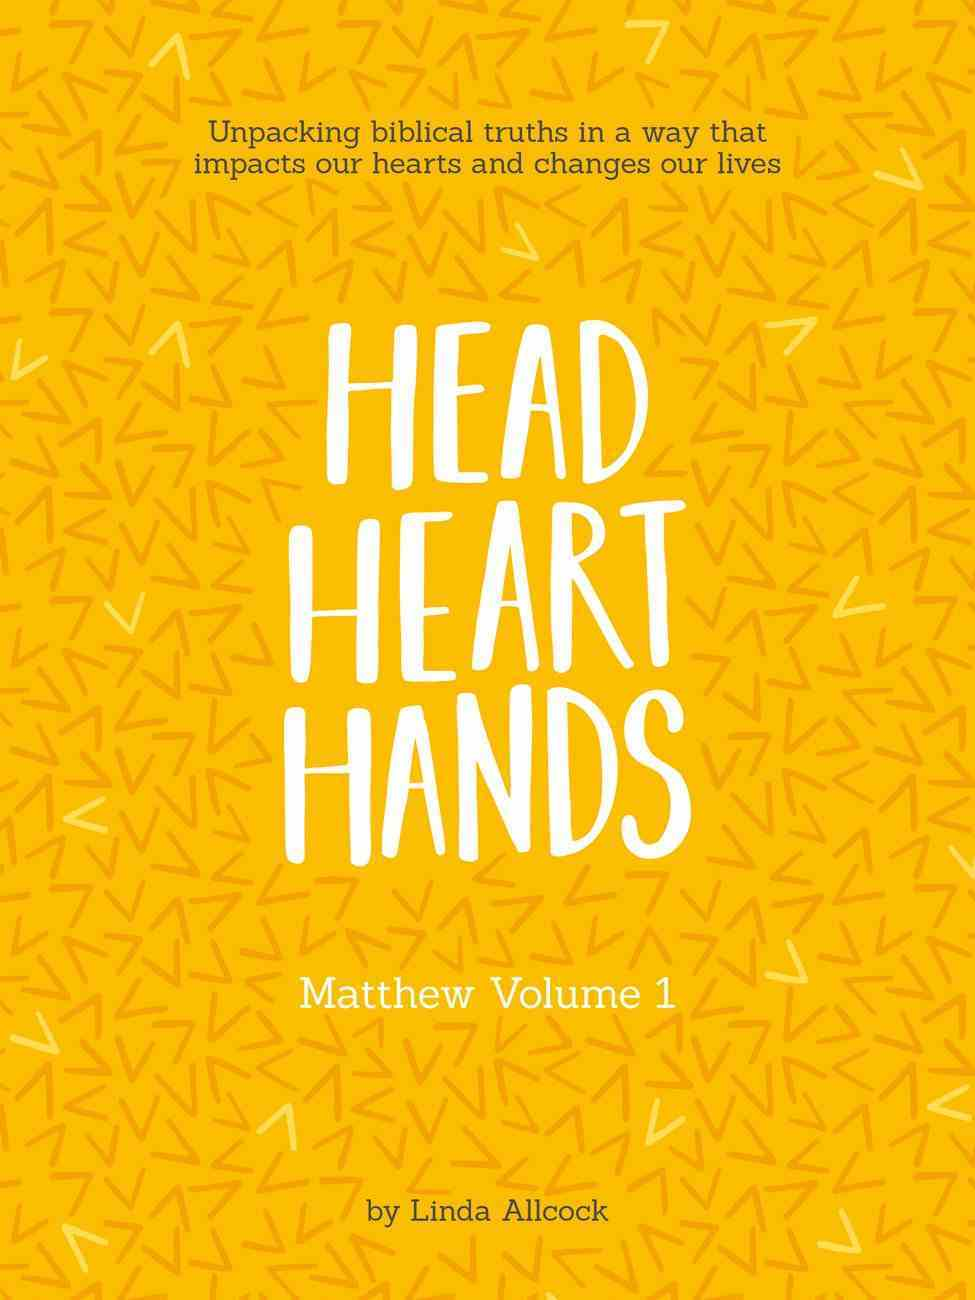 Head Heart Hands: Unpacking Biblical Truths in a Way That Impacts Our Hearts and Changes Our Lives (3 Book Set) Paperback